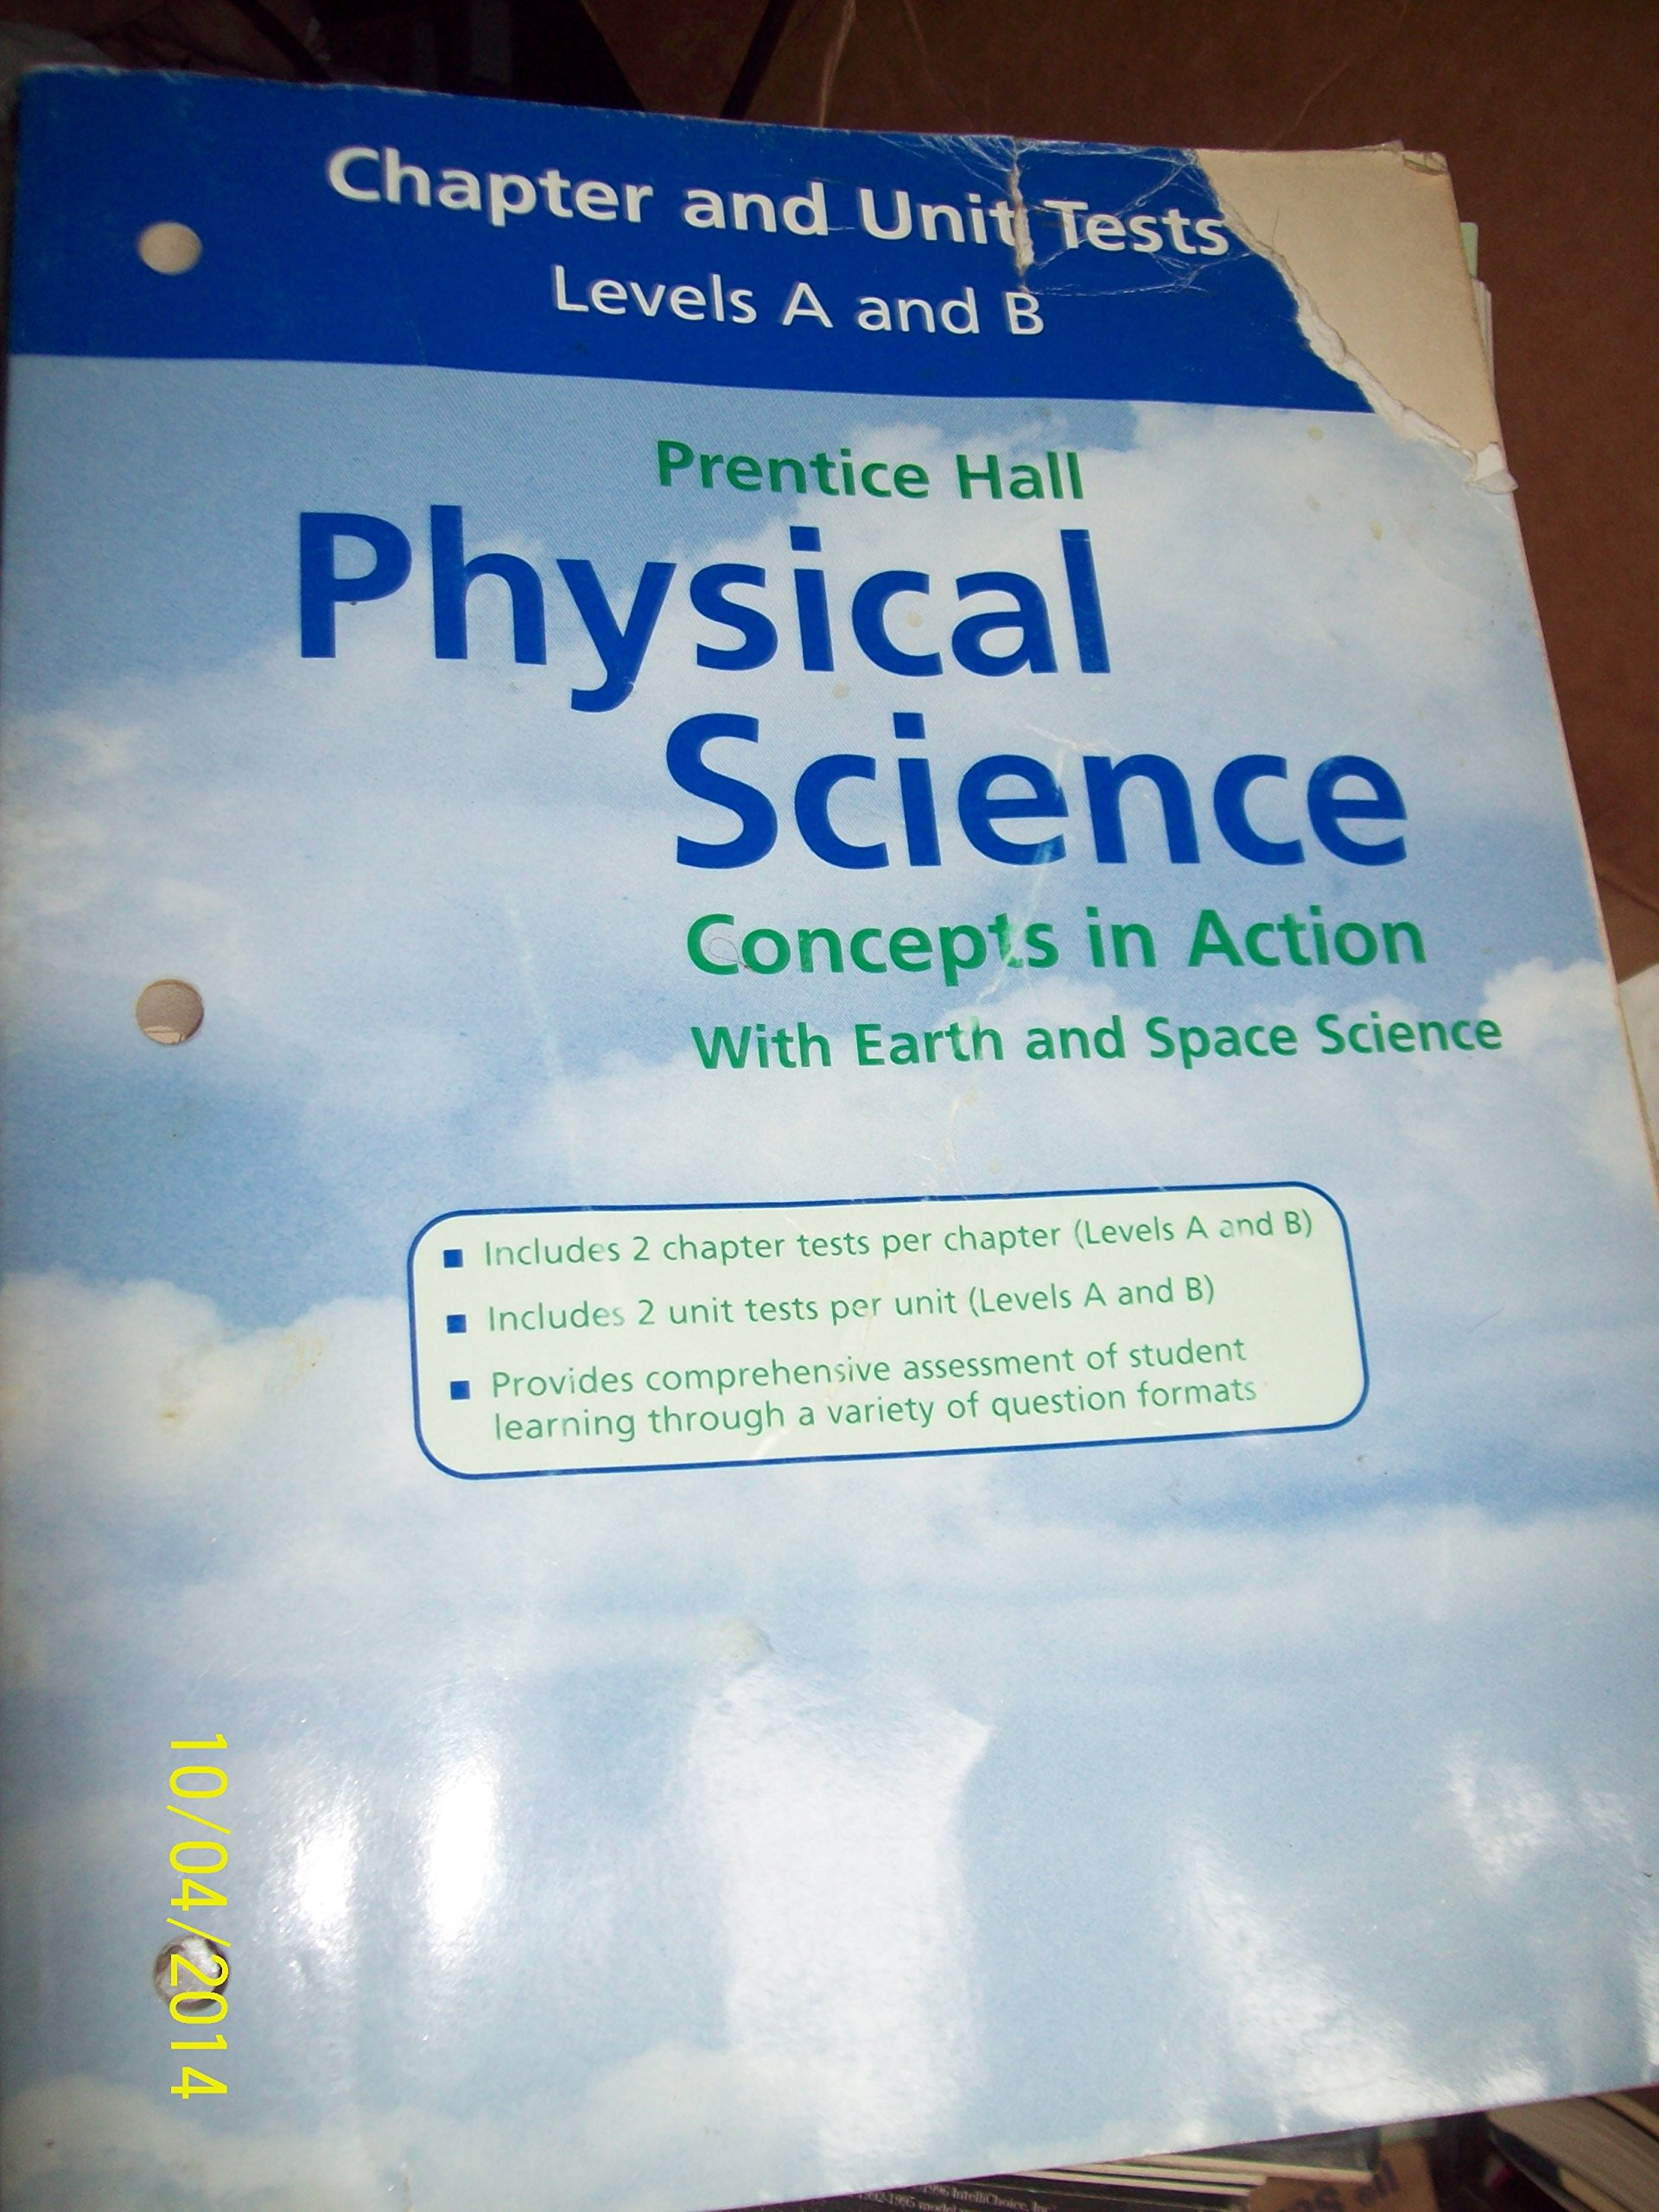 Worksheets Prentice Hall Physical Science Worksheets chapter and unit tests levels a b prentice hall physical science concepts in action with earth space prentic